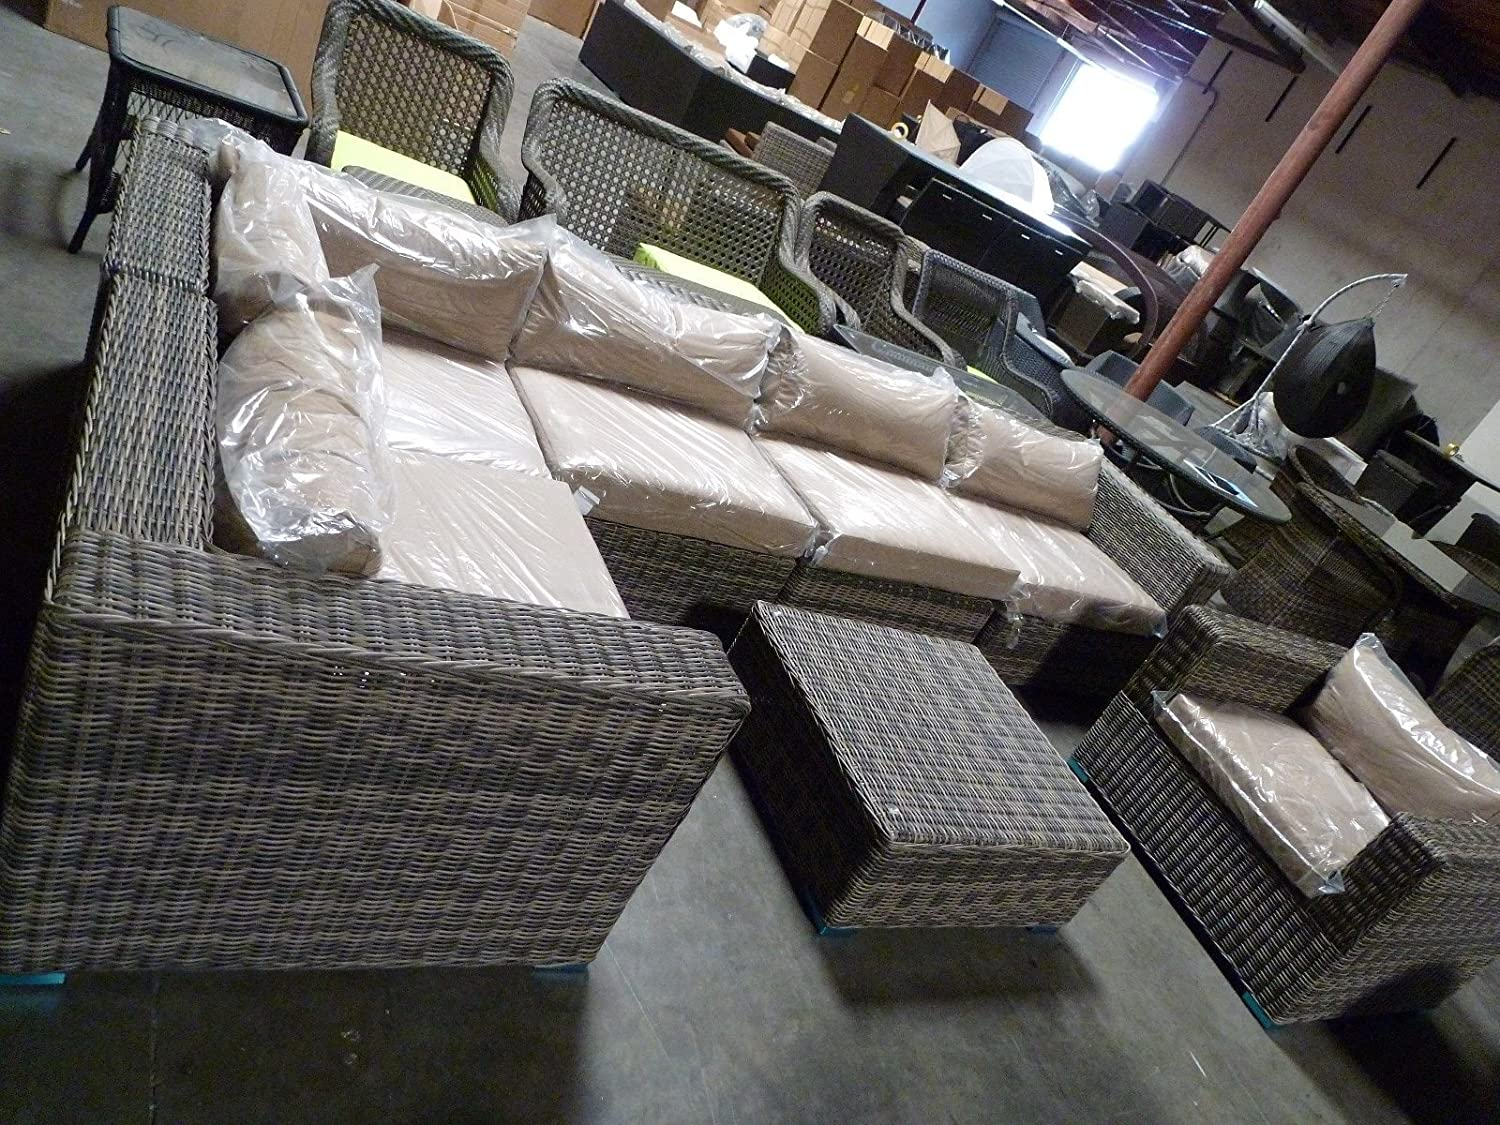 Amazon.com : Distressed Outdoor Wicker Sectional Sofa Chair Coffee Table Patio  Furniture Set : Garden U0026 Outdoor